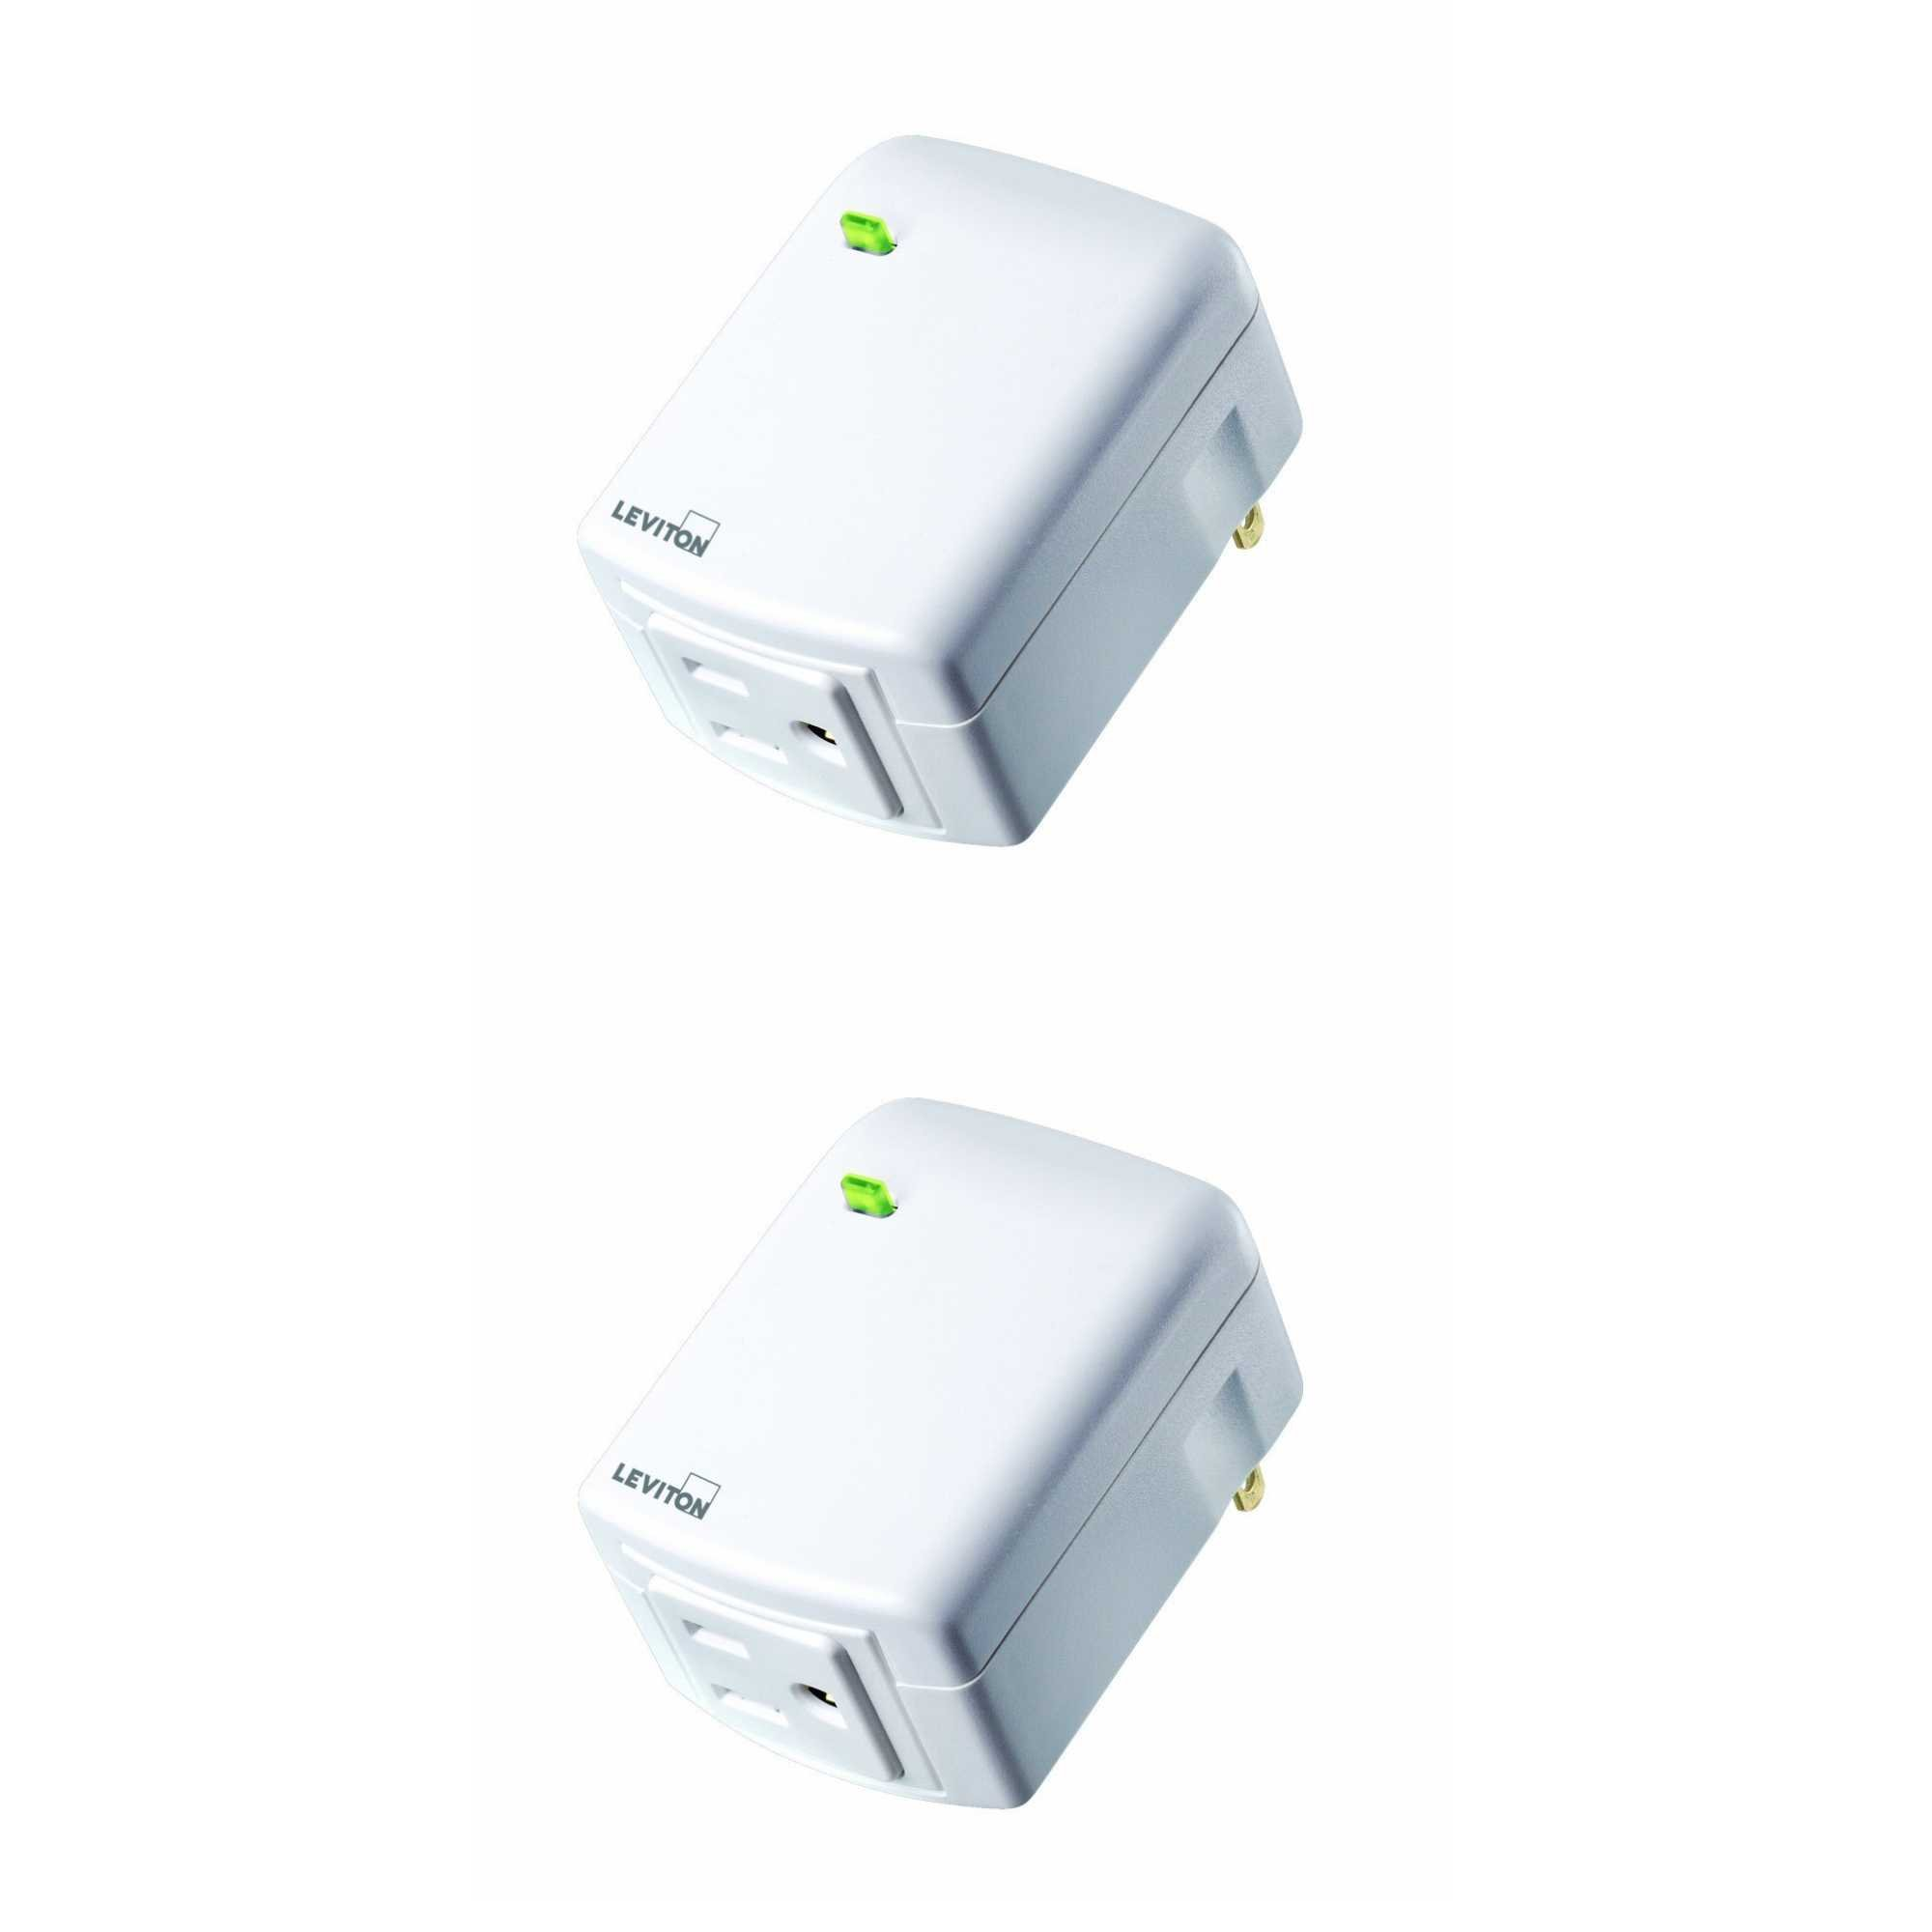 Leviton DW15A-1BW Decora Smart Wi-Fi Plug-in Outlet, Works with Amazon Alexa, No Hub Required (2 Pack)